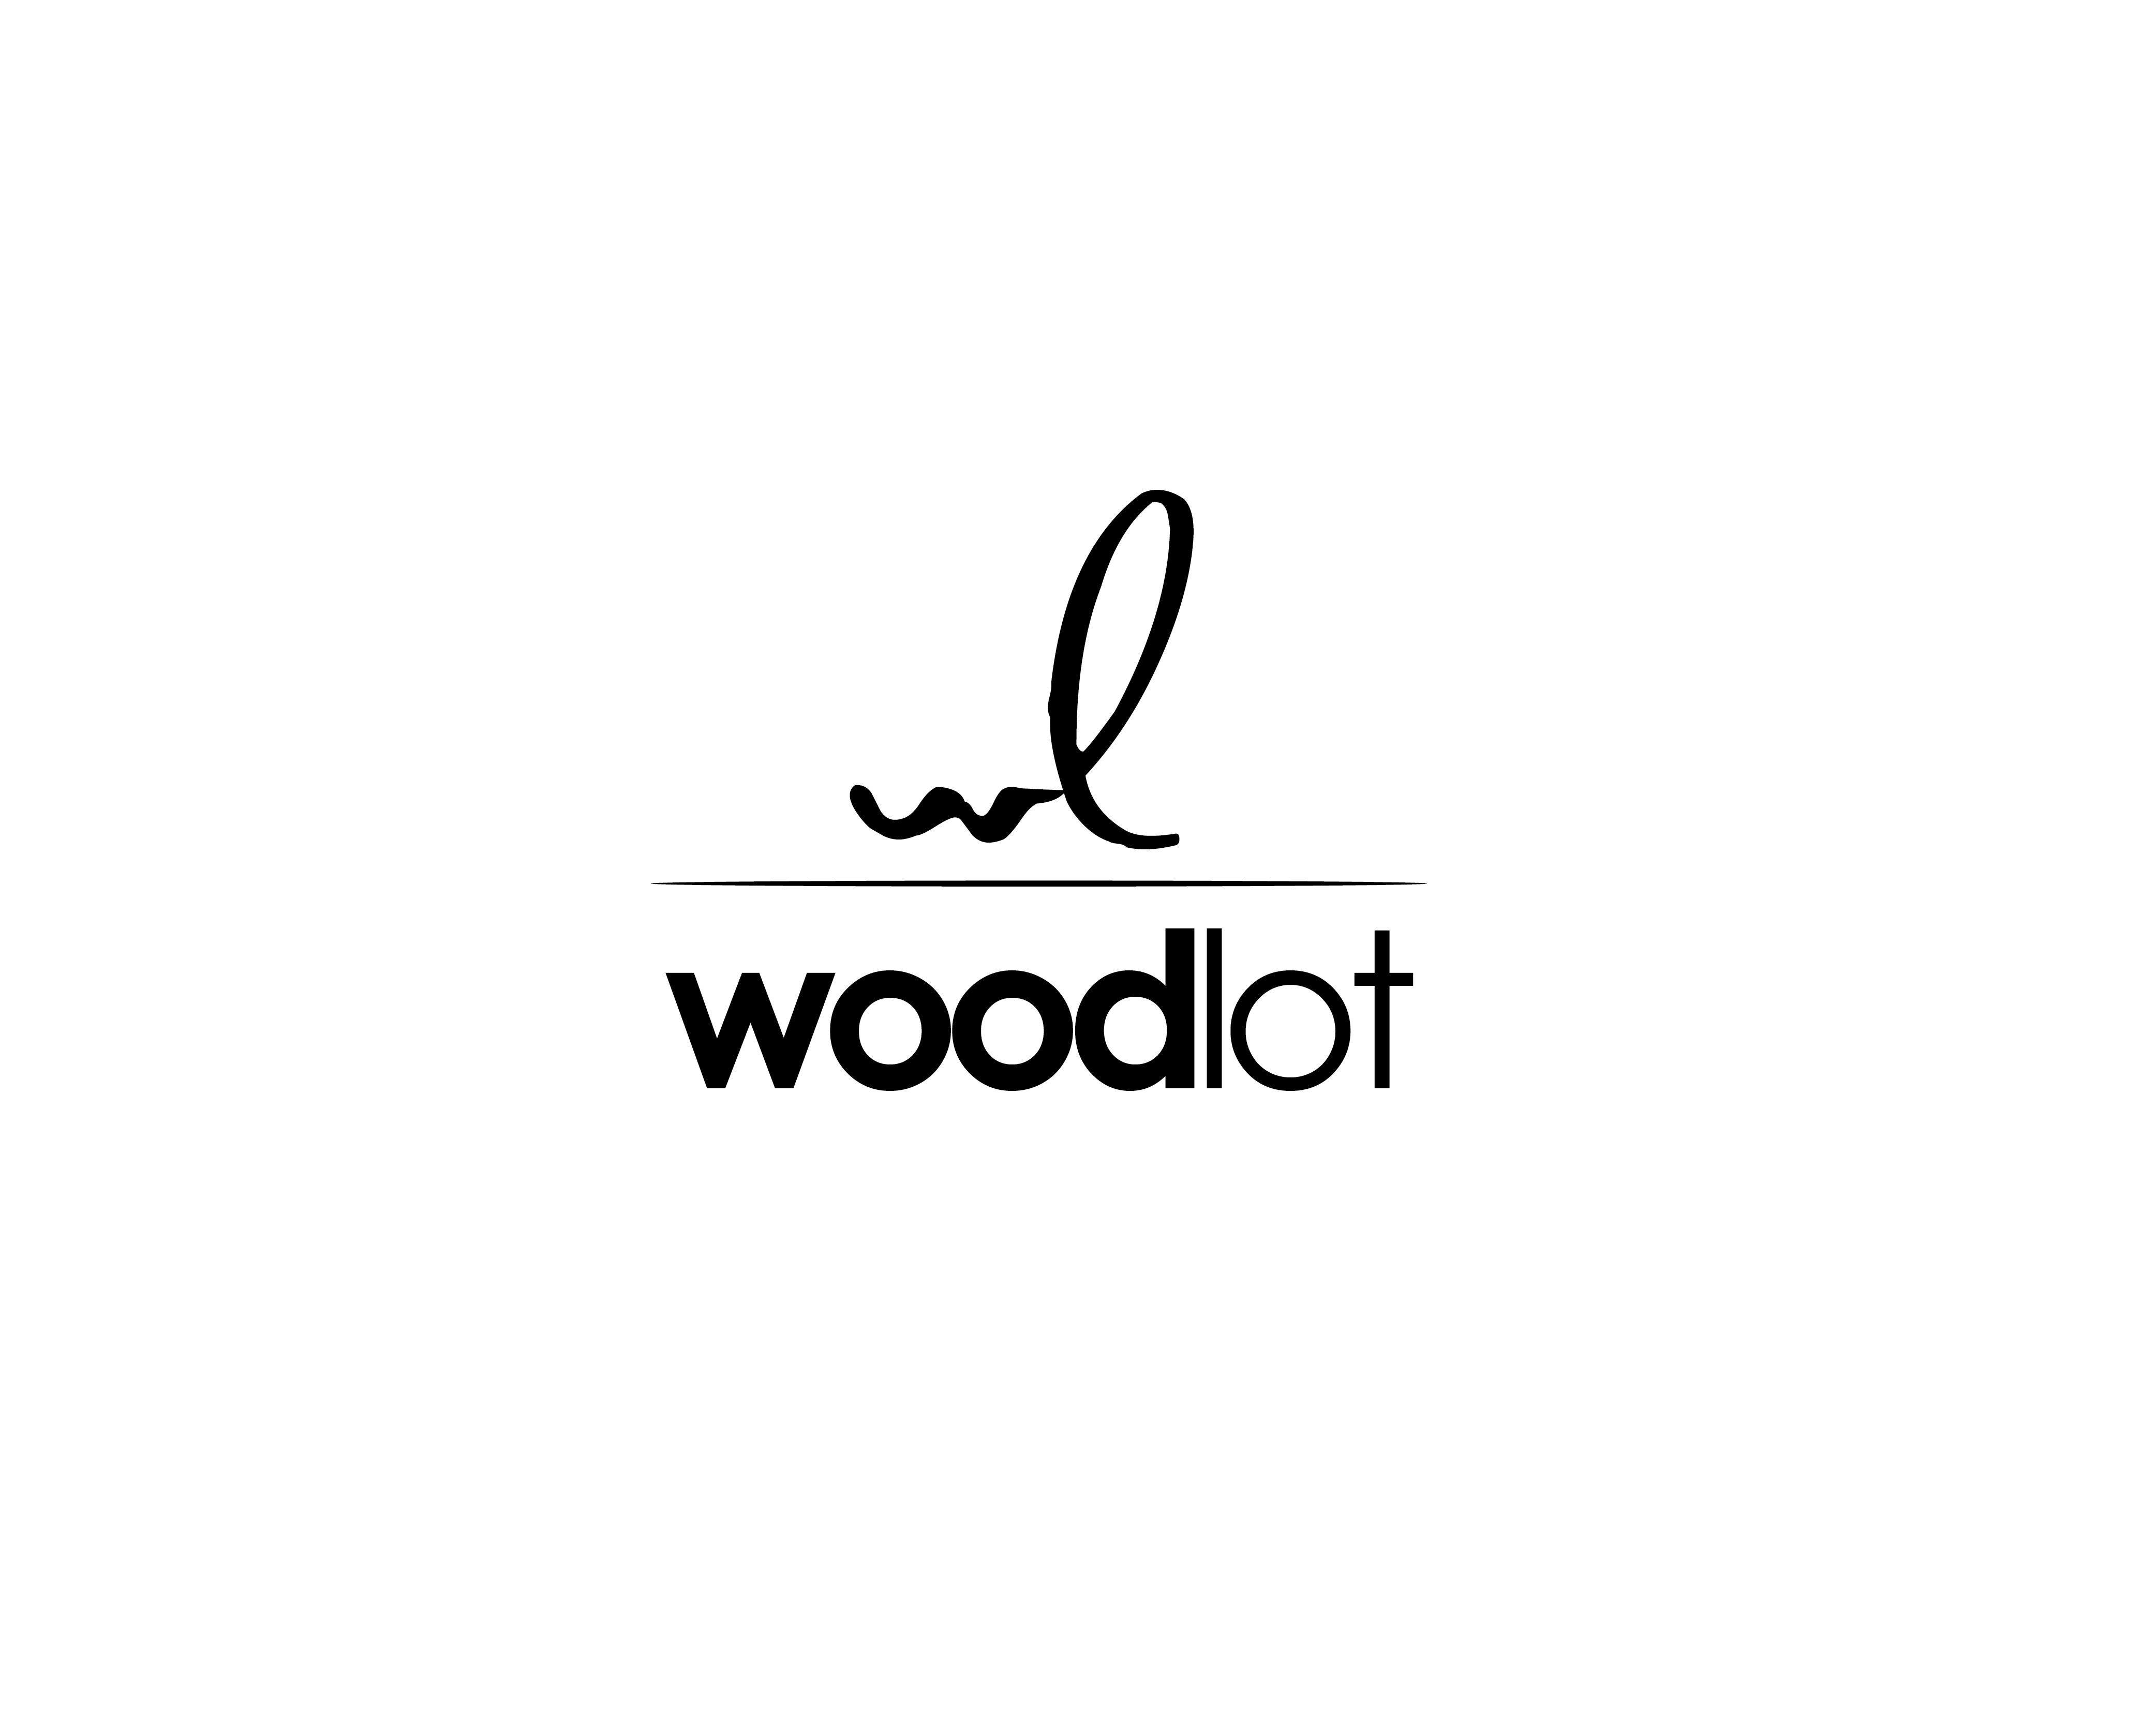 Logo Design by roc - Entry No. 49 in the Logo Design Contest Fun Logo Design for woodlot.